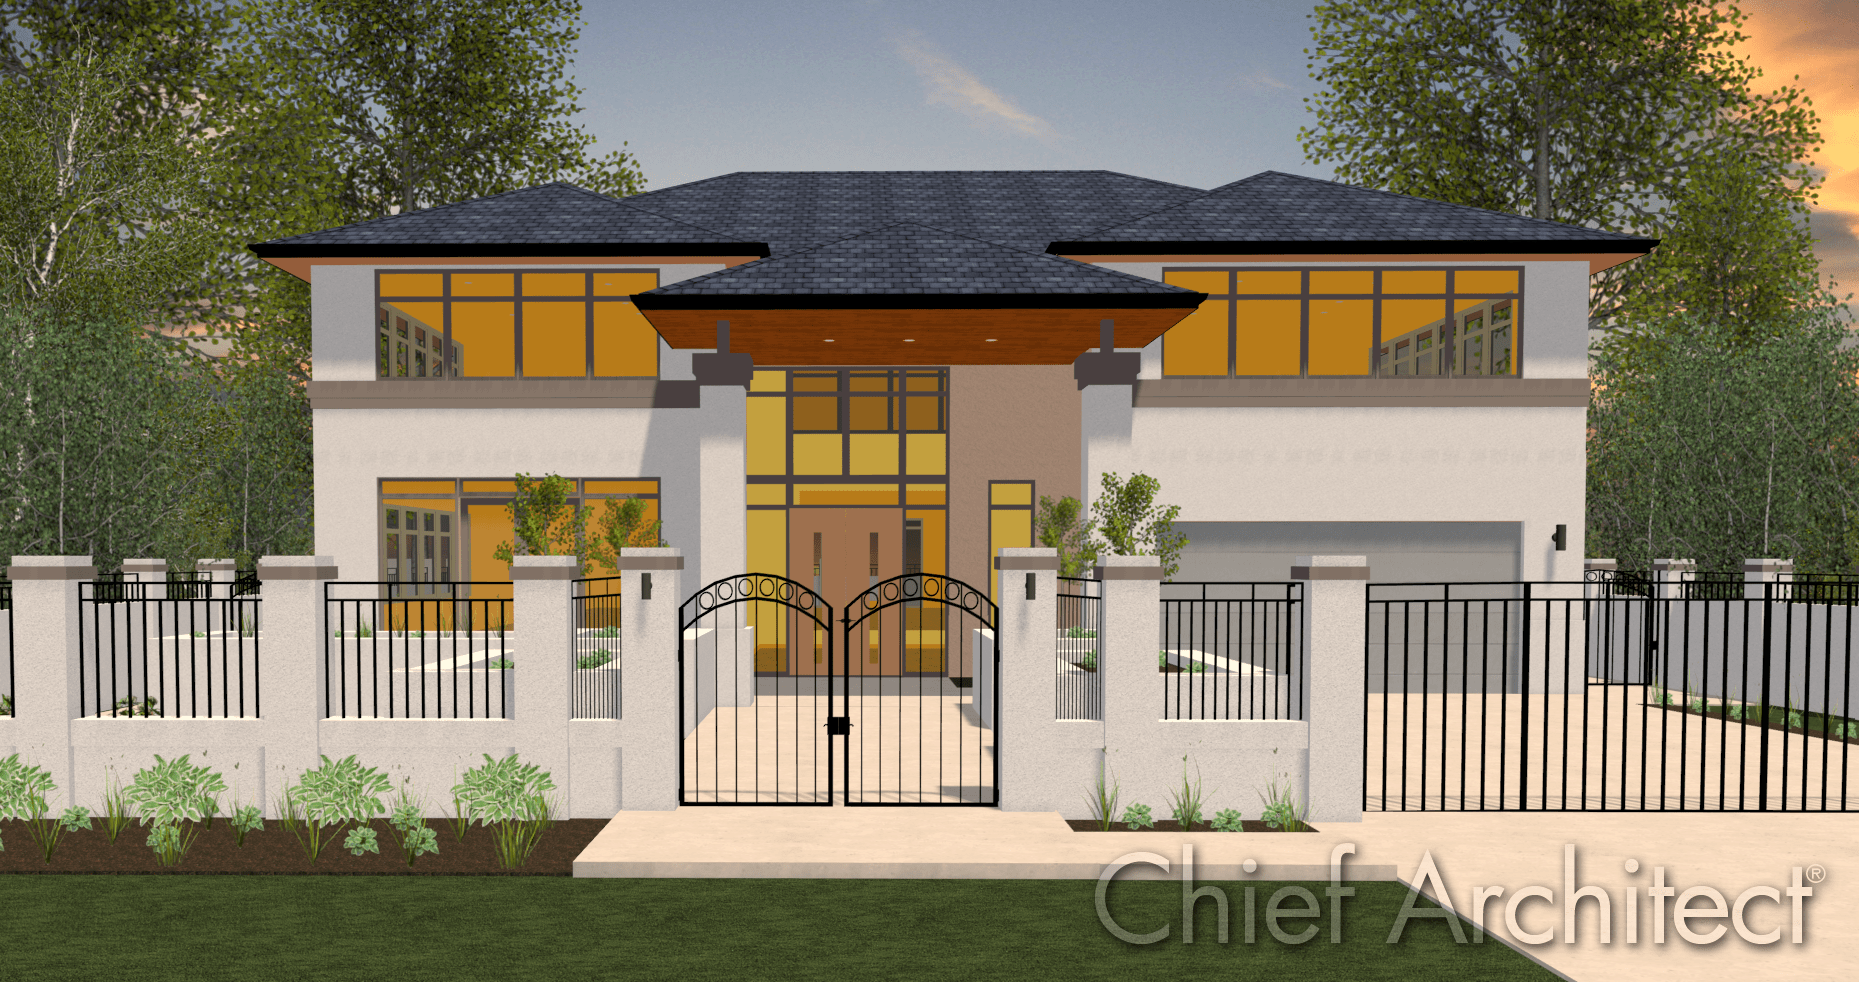 How To Be A Home Designer Png Hd Of Homes Transparent Hd Of Homes Png Images Pluspng